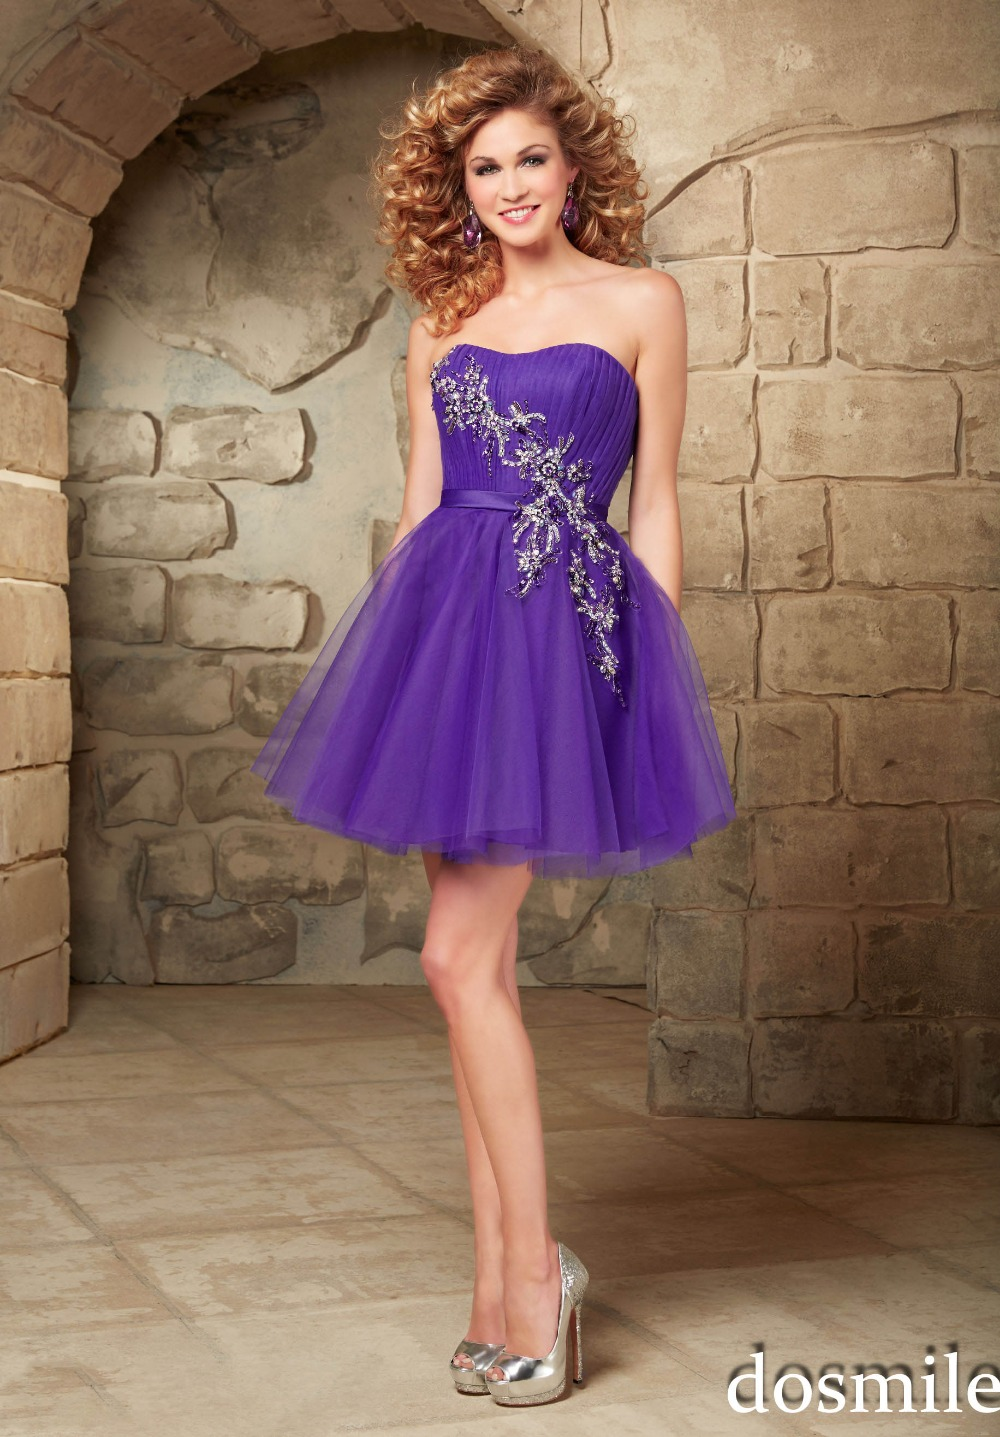 2016 mini strapless homecoming Dresses purple peach appliques cocktail  party gown sweet 16 dress 8th graduation semi formal gown-in Homecoming  Dresses from ... 199b088d5